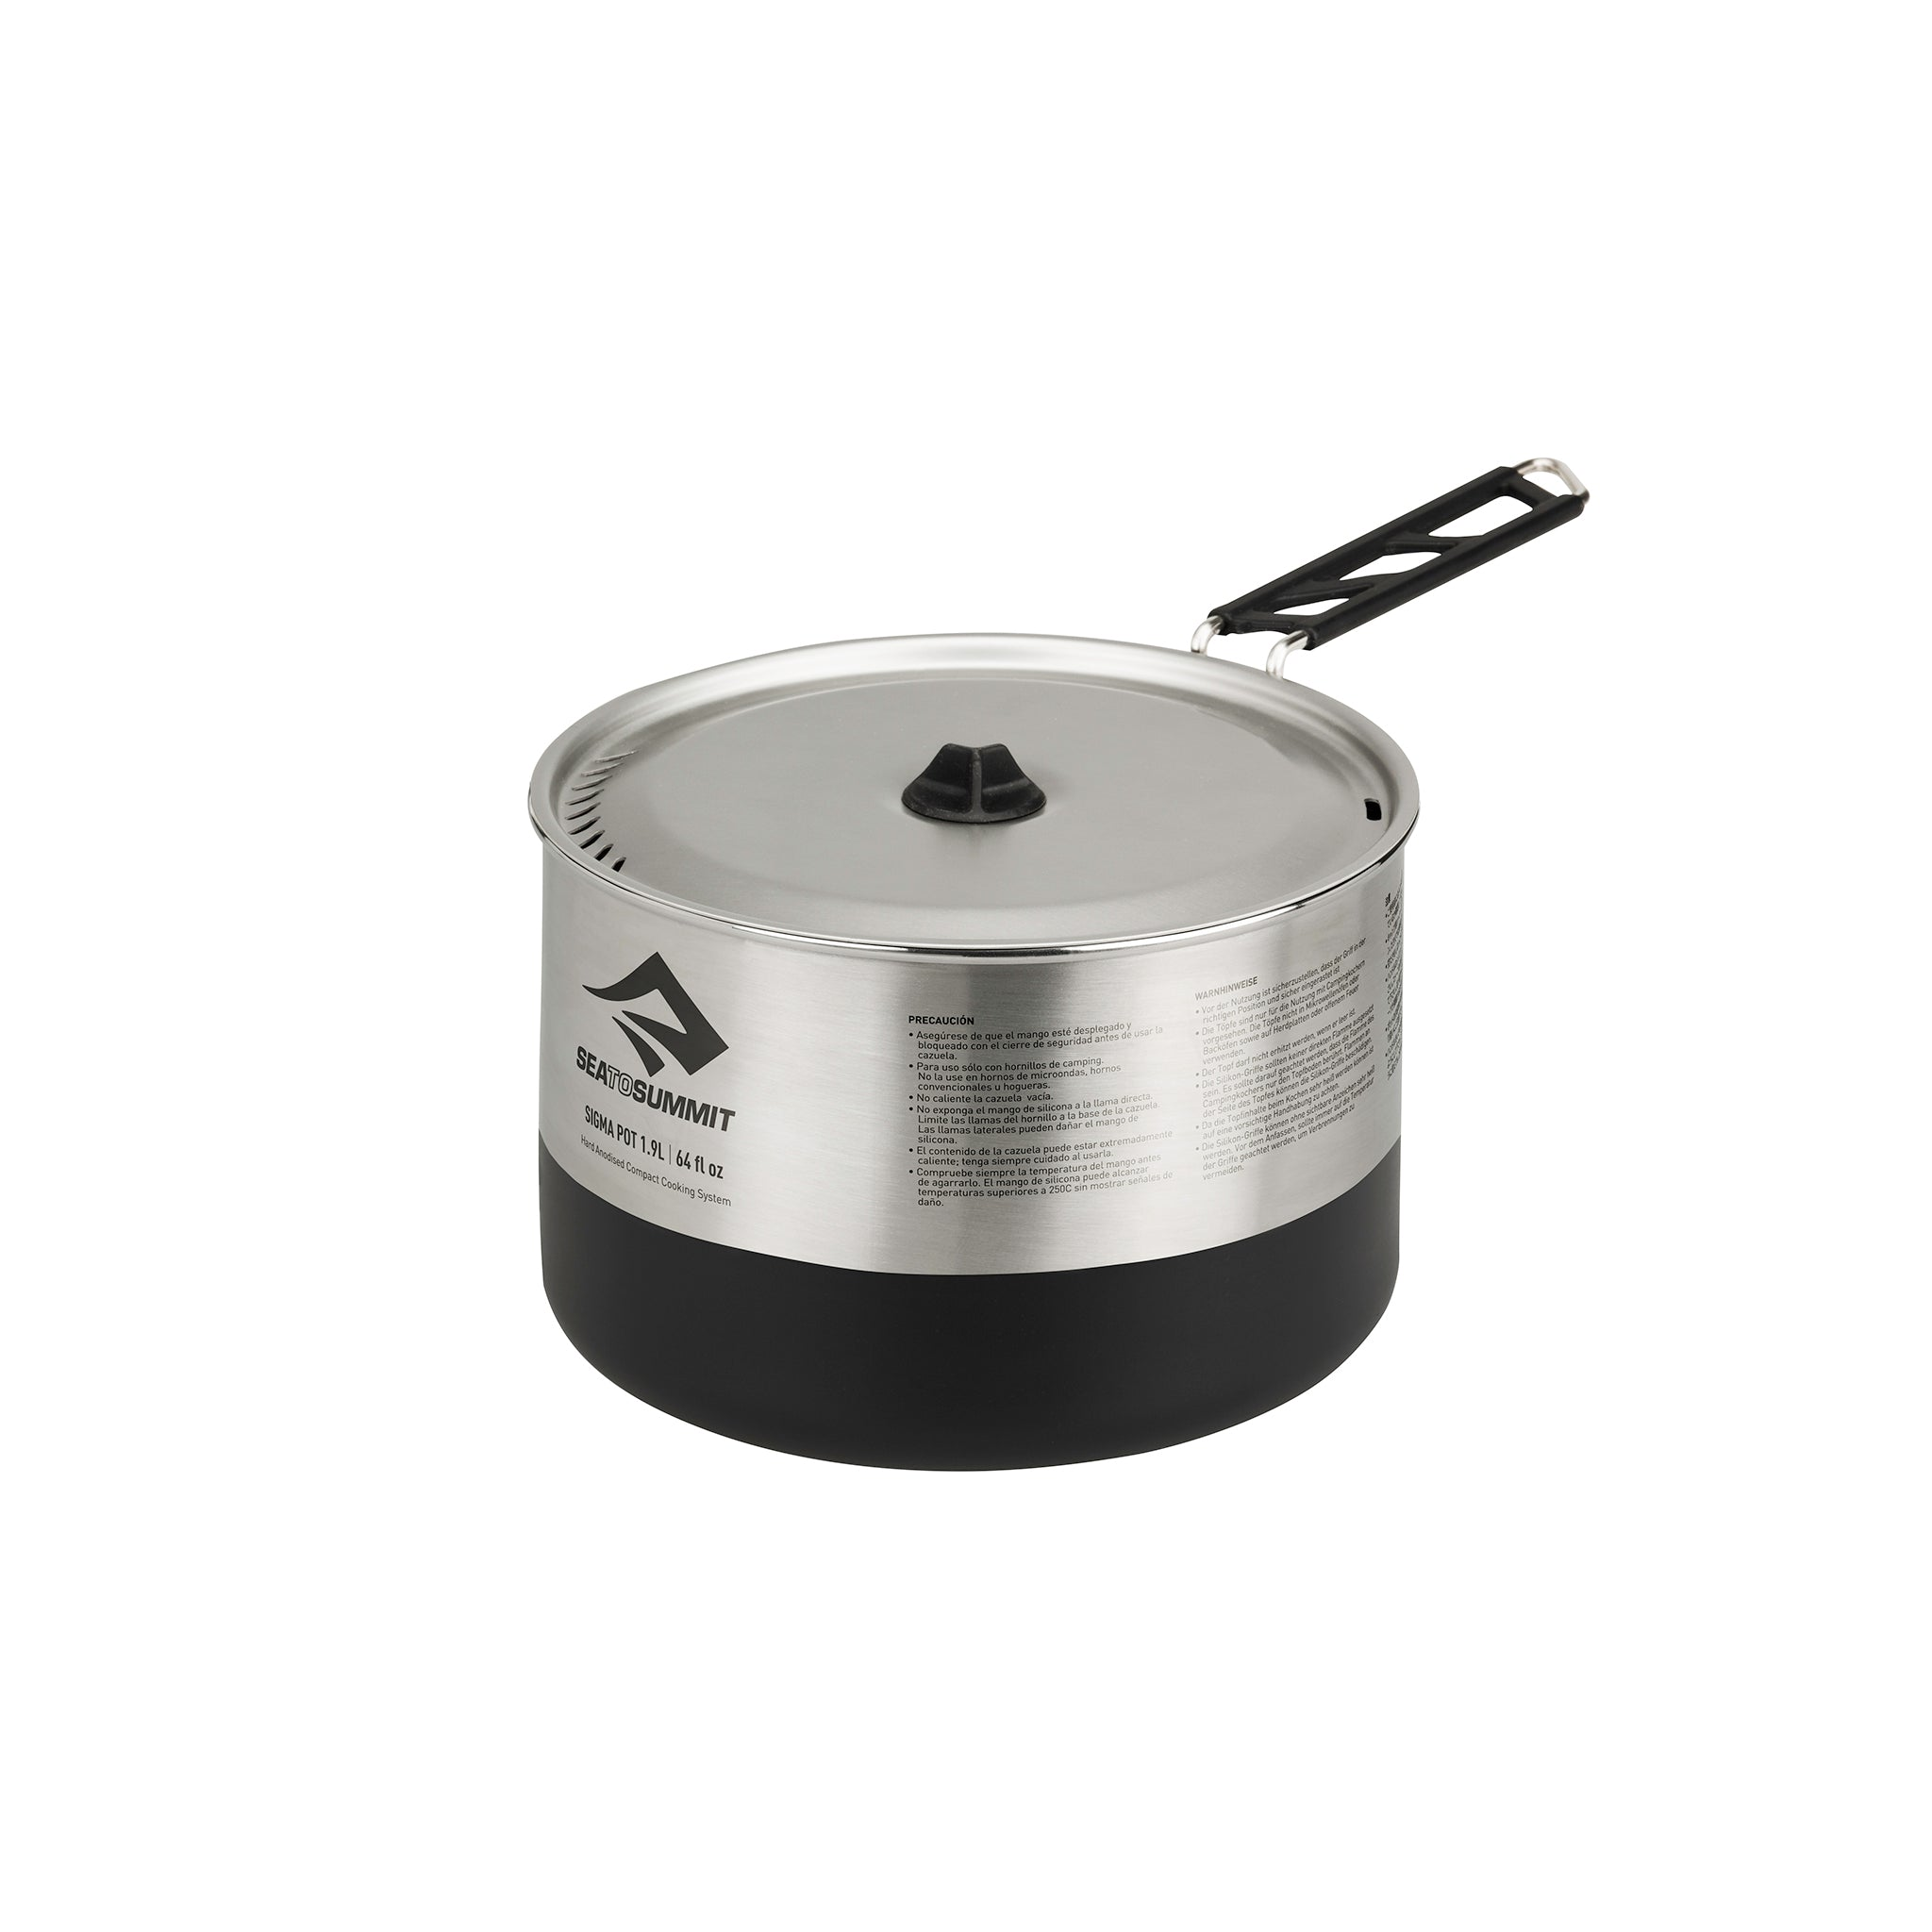 Sigma Stainless Steel Nesting Pot for Camping _ 1.9 Liter